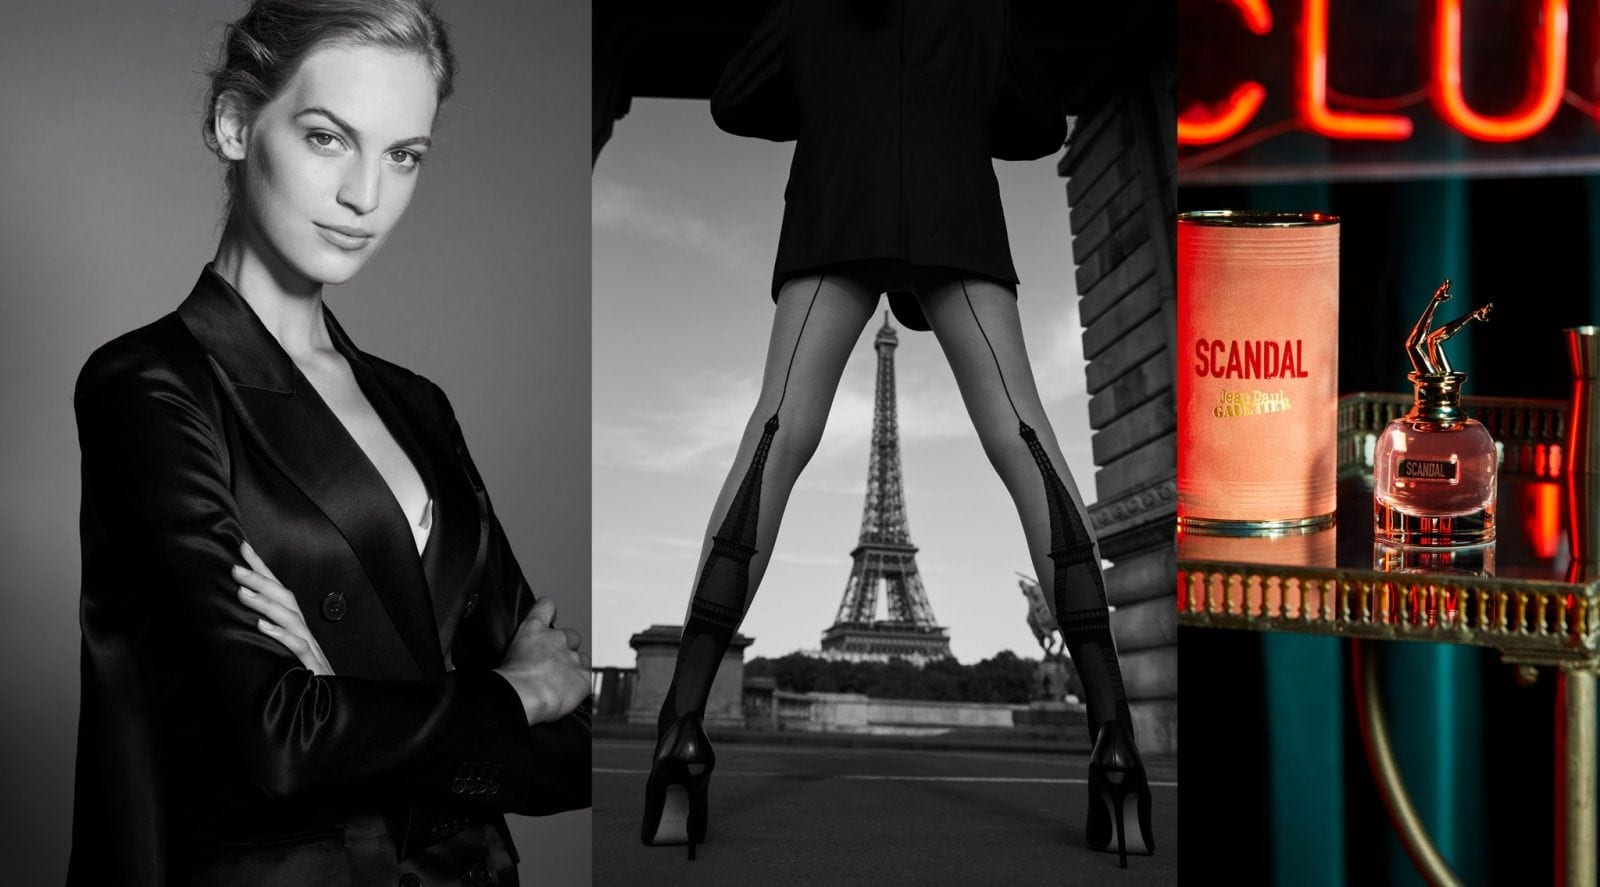 Starting a Scandal - by Jean Paul Gaultier with Vanessa Axente